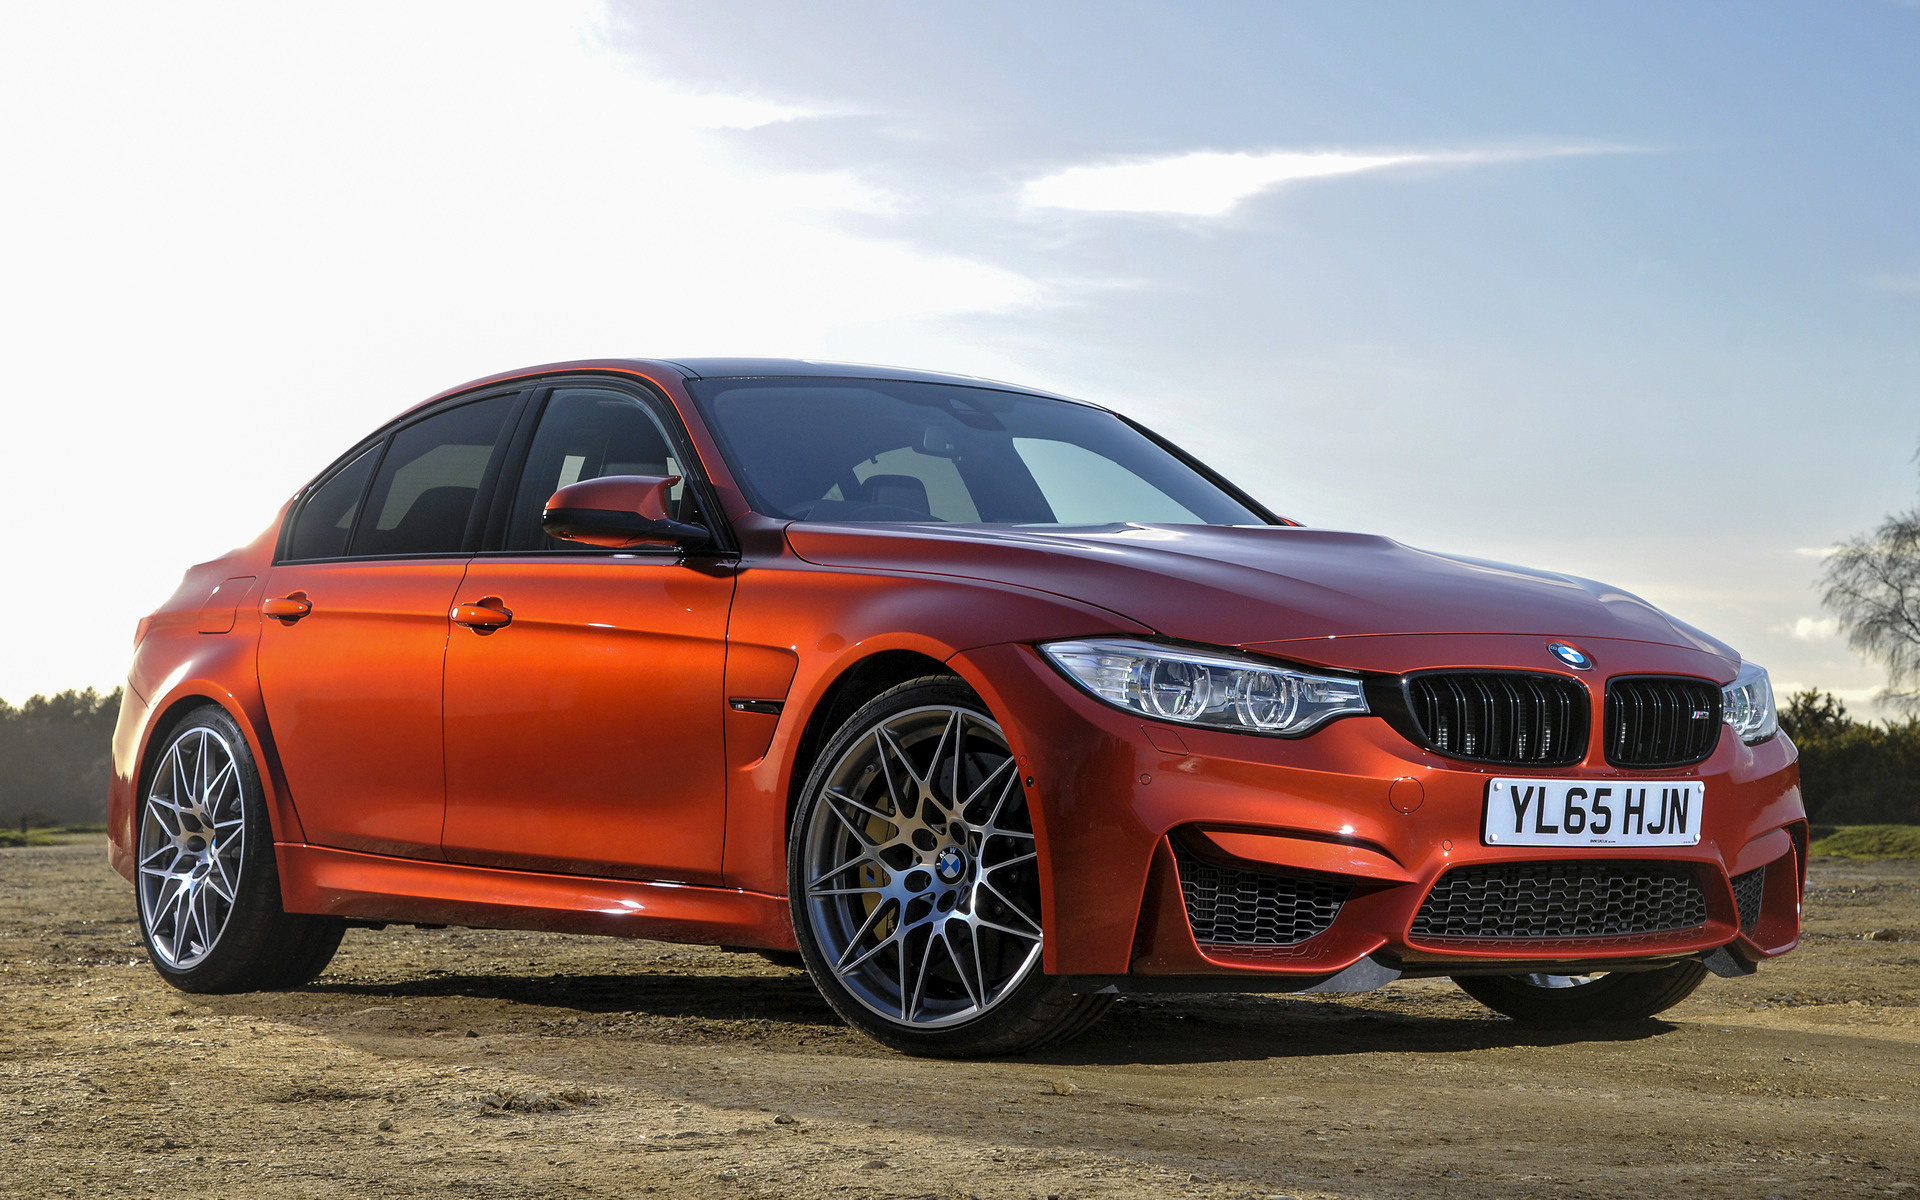 Bmw m3 competition package 2016 uk wallpapers and hd images car pixel